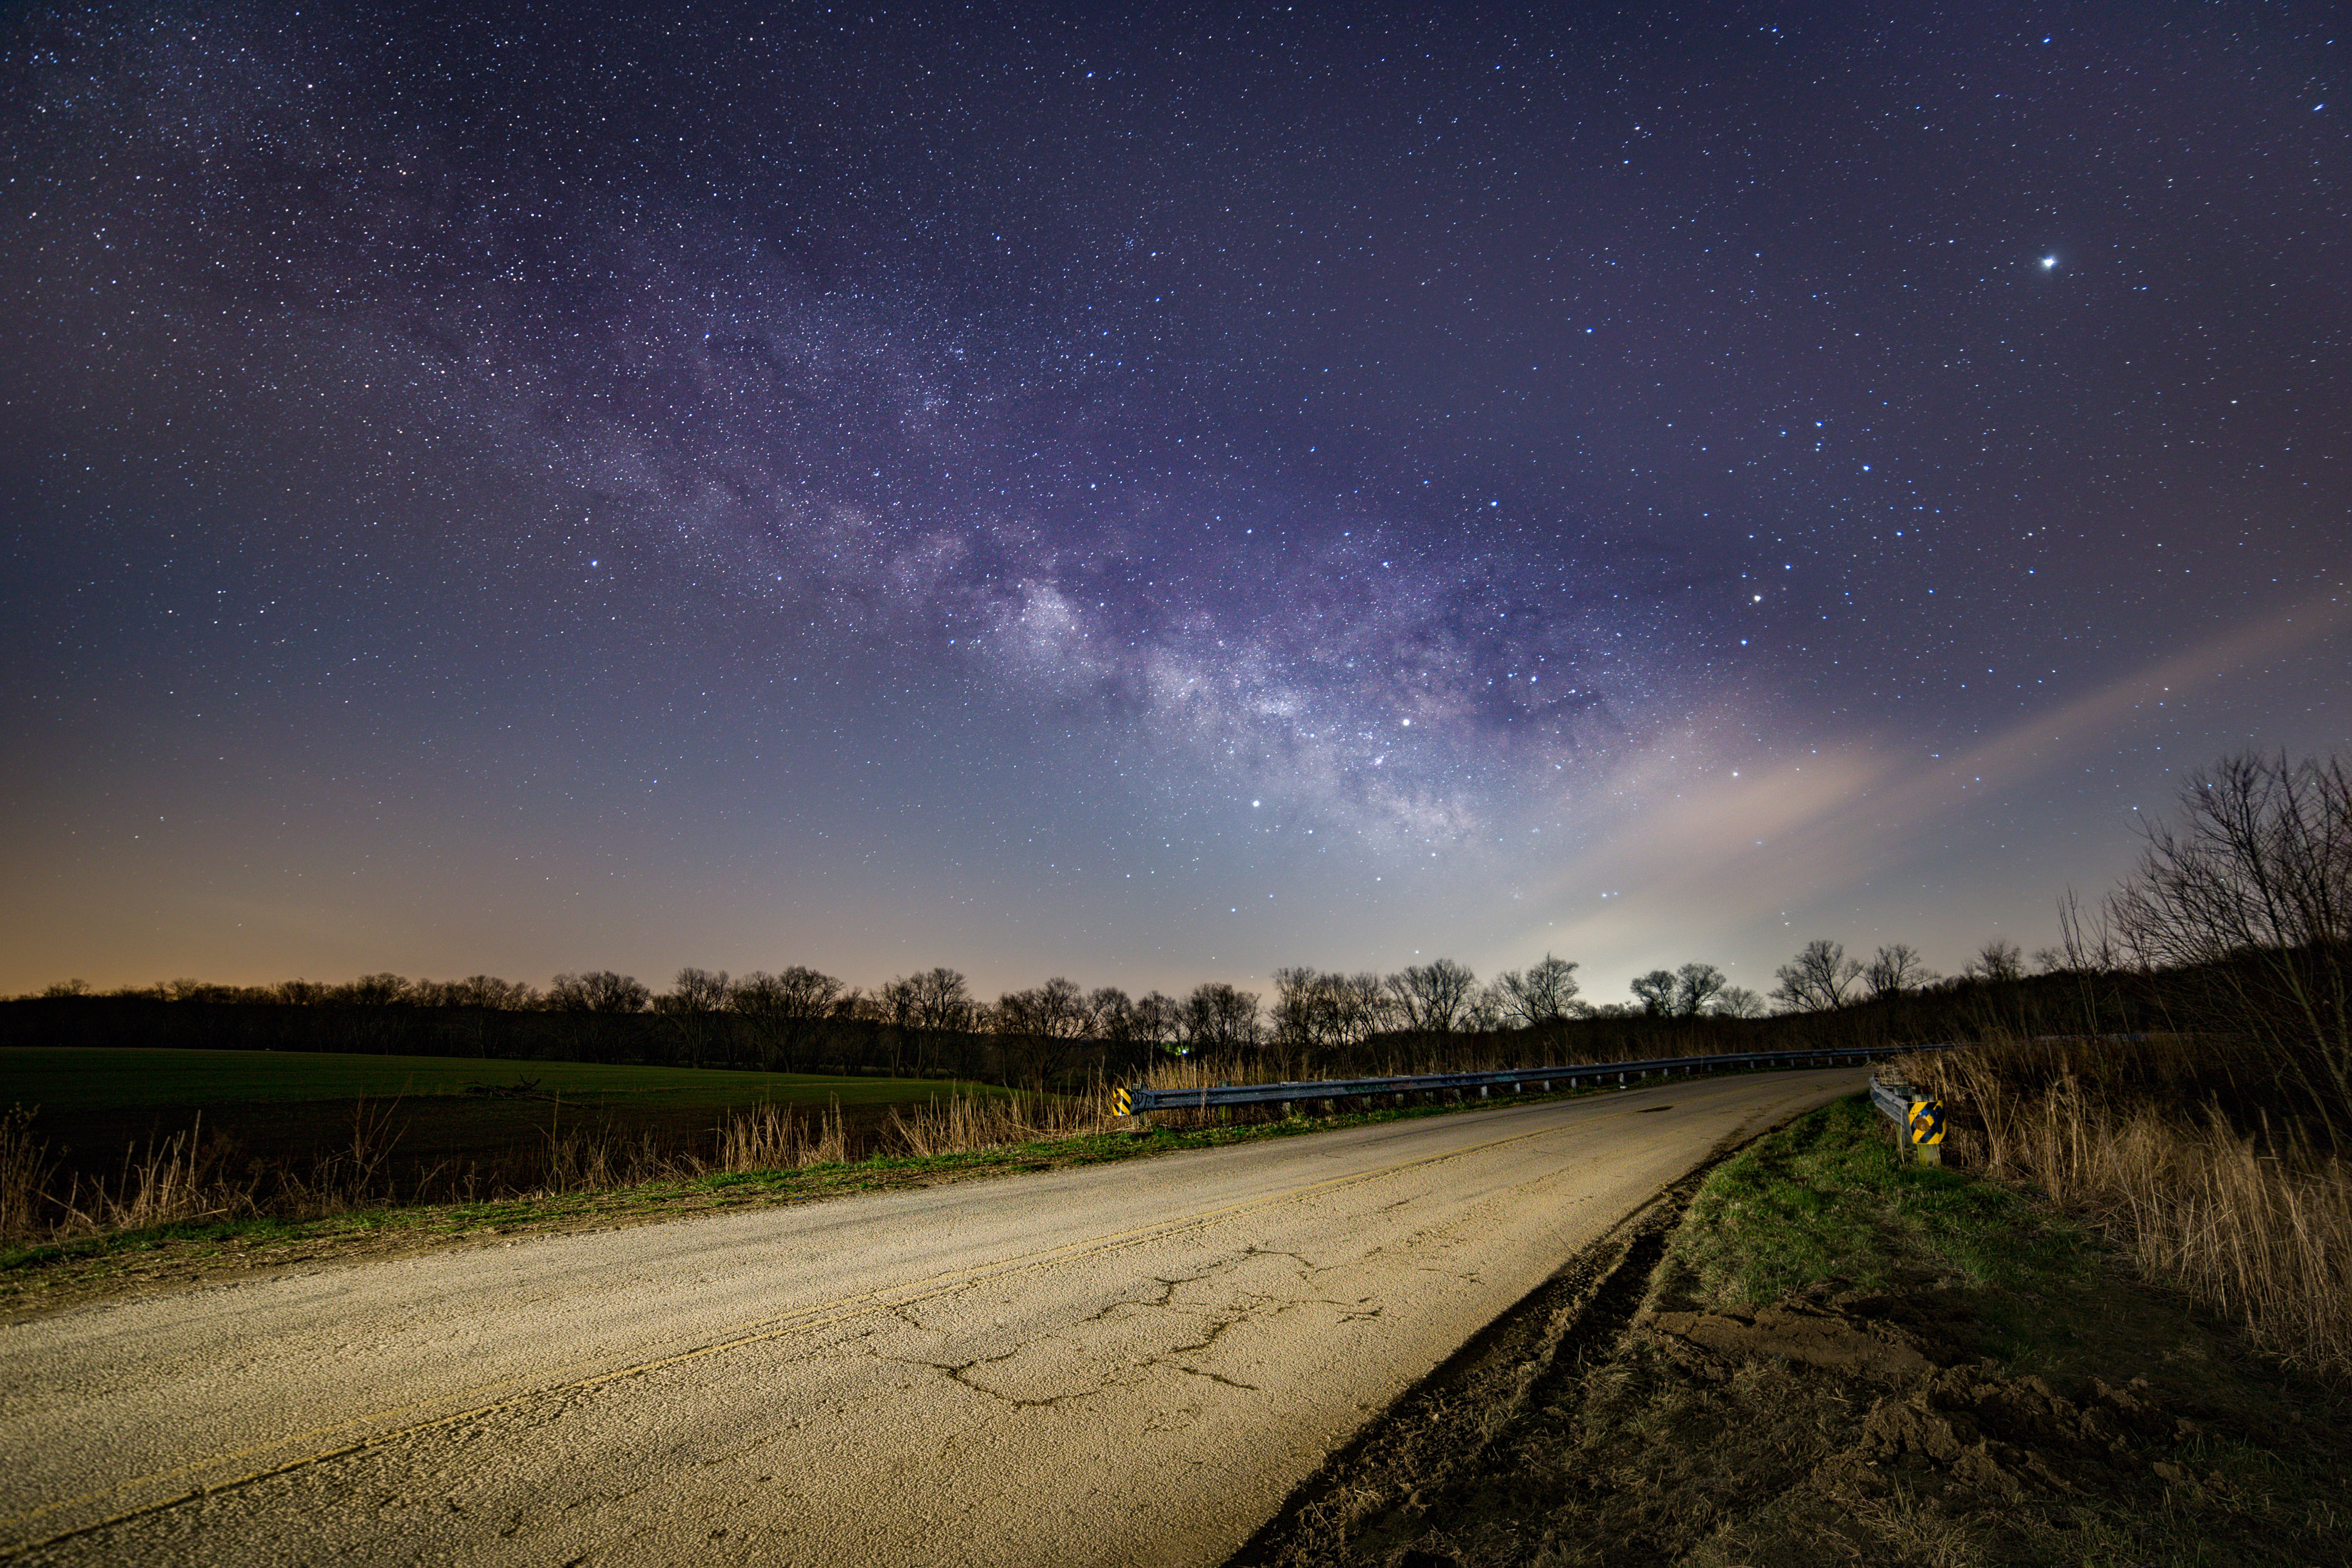 Where the road meets the sky